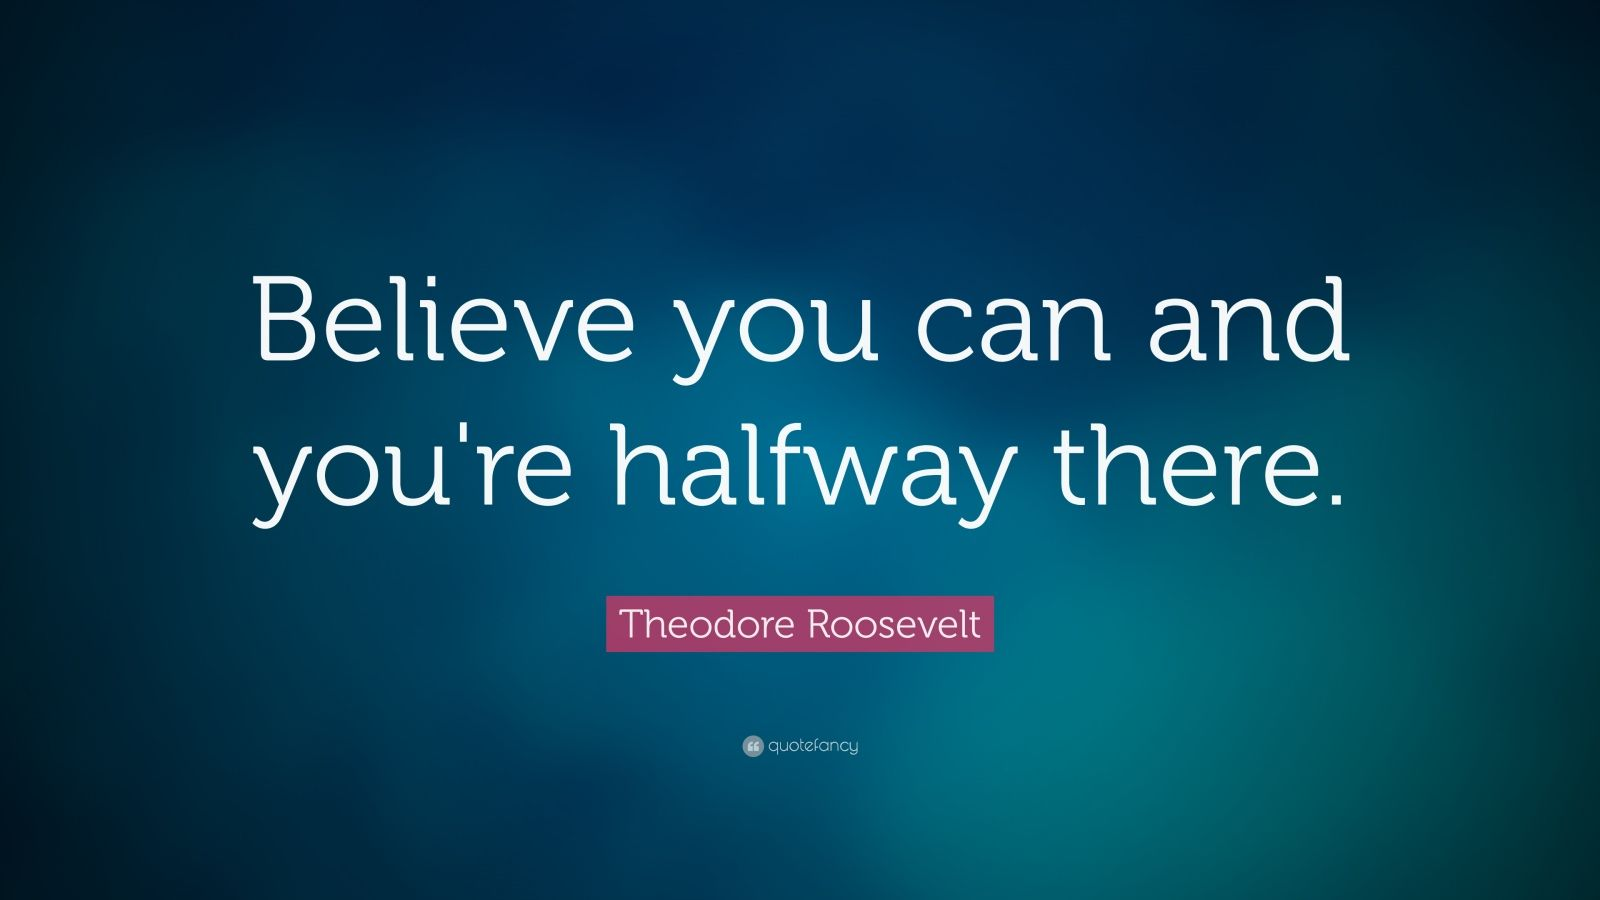 Manny Pacquiao Quotes Wallpaper Theodore Roosevelt Quote Believe You Can And You Re